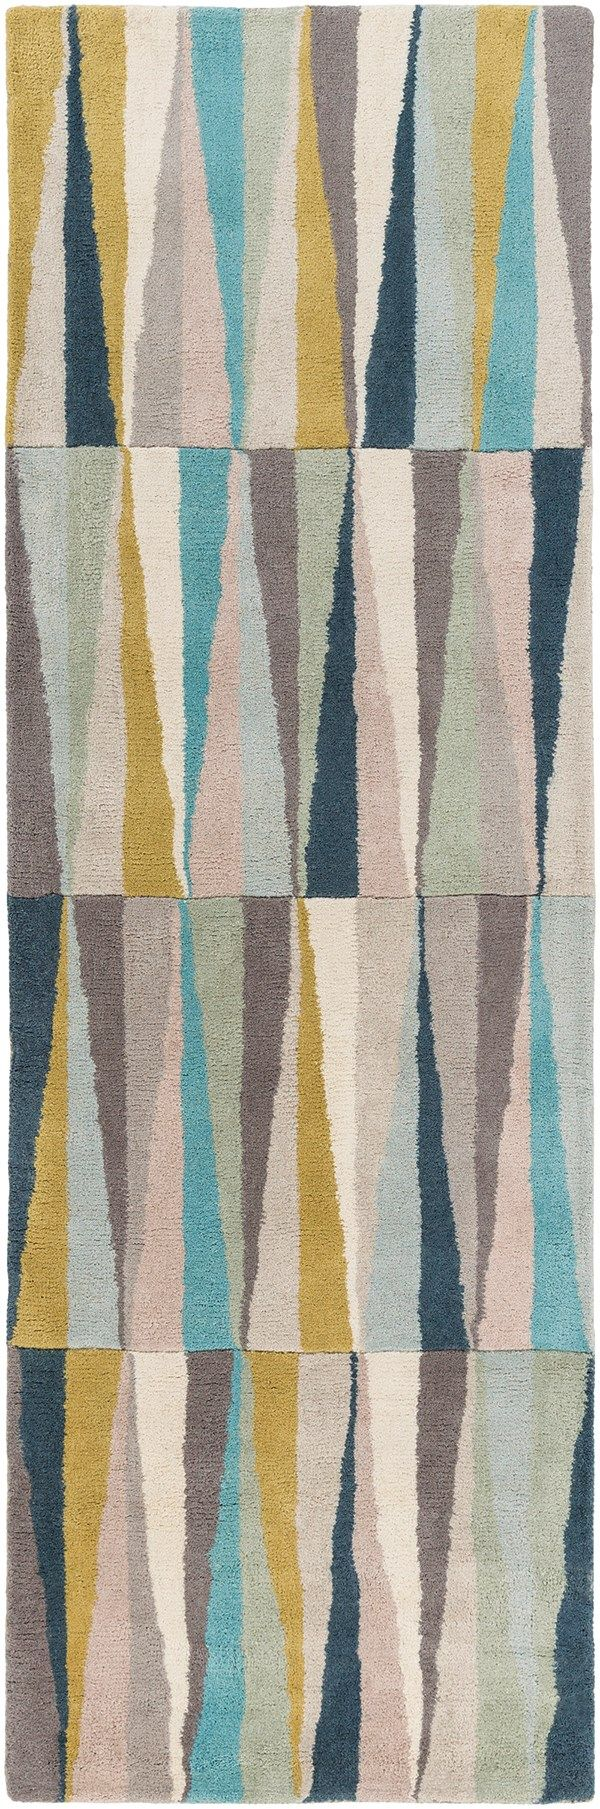 Surya Oasis OAS-1095 Rugs | Rugs Direct